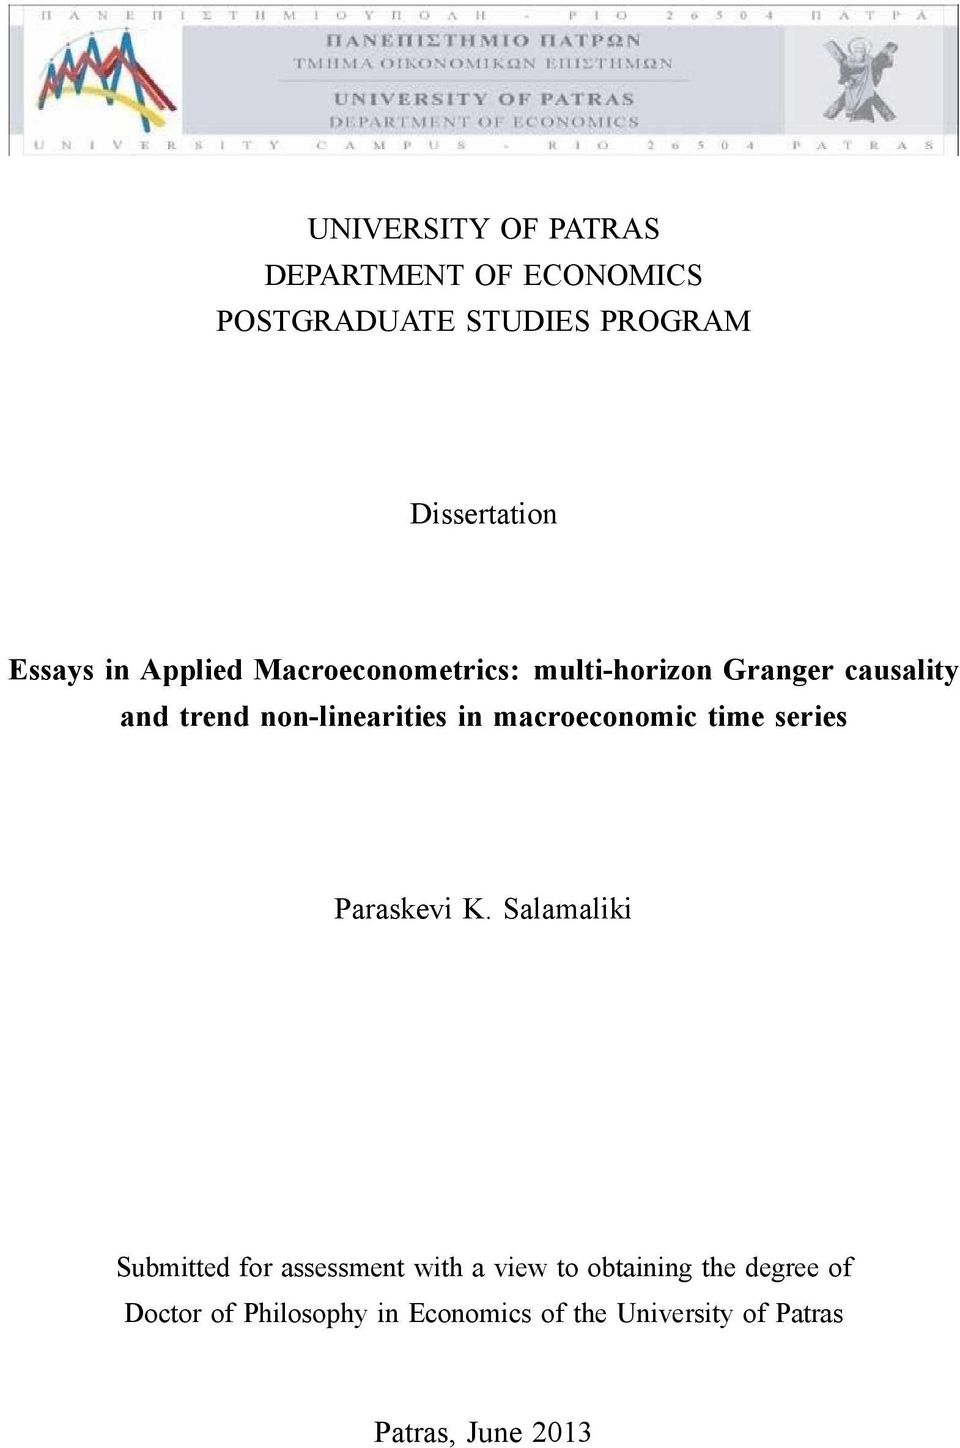 macroeconomic time series Paraskevi K.